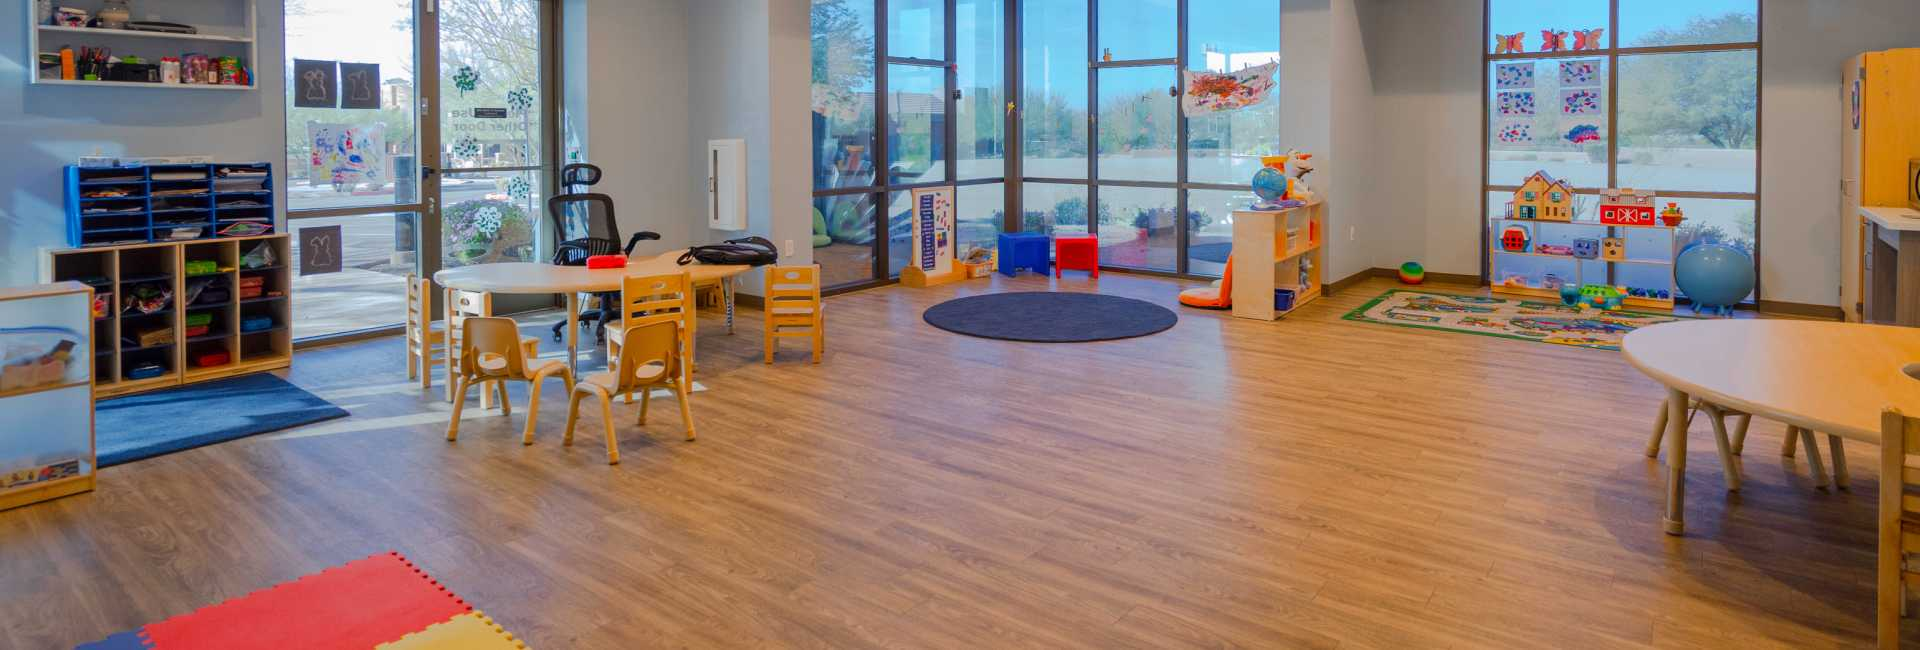 a wideshot of the playroom in the Scottsdale Children's Institute featuring tables, chairs, and toys